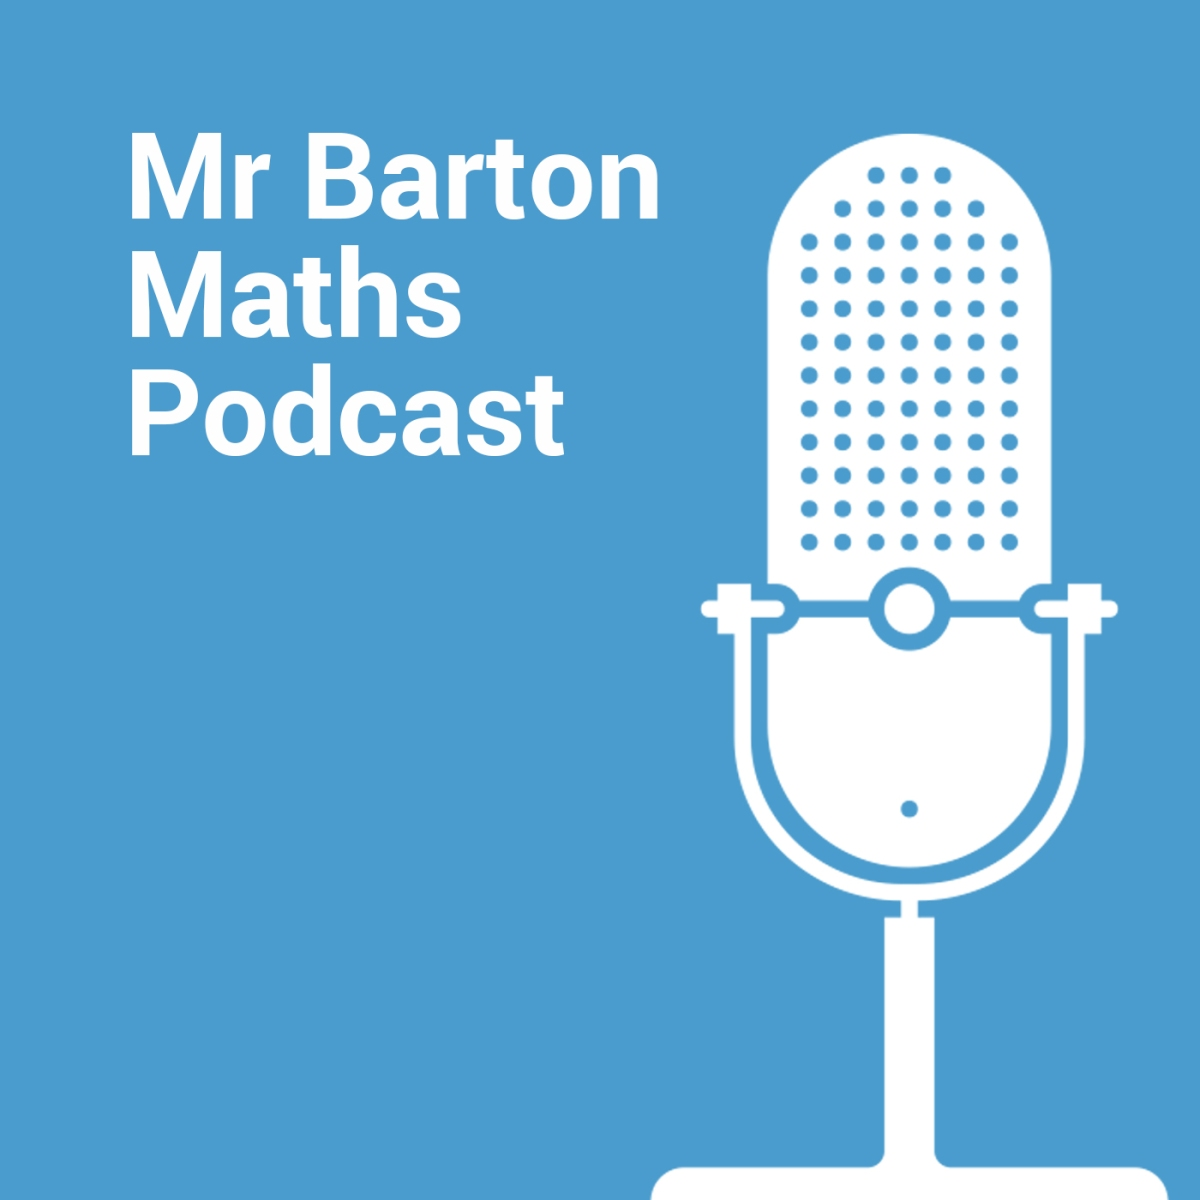 My chat with Craig Barton on the @mrbartonmaths podcast